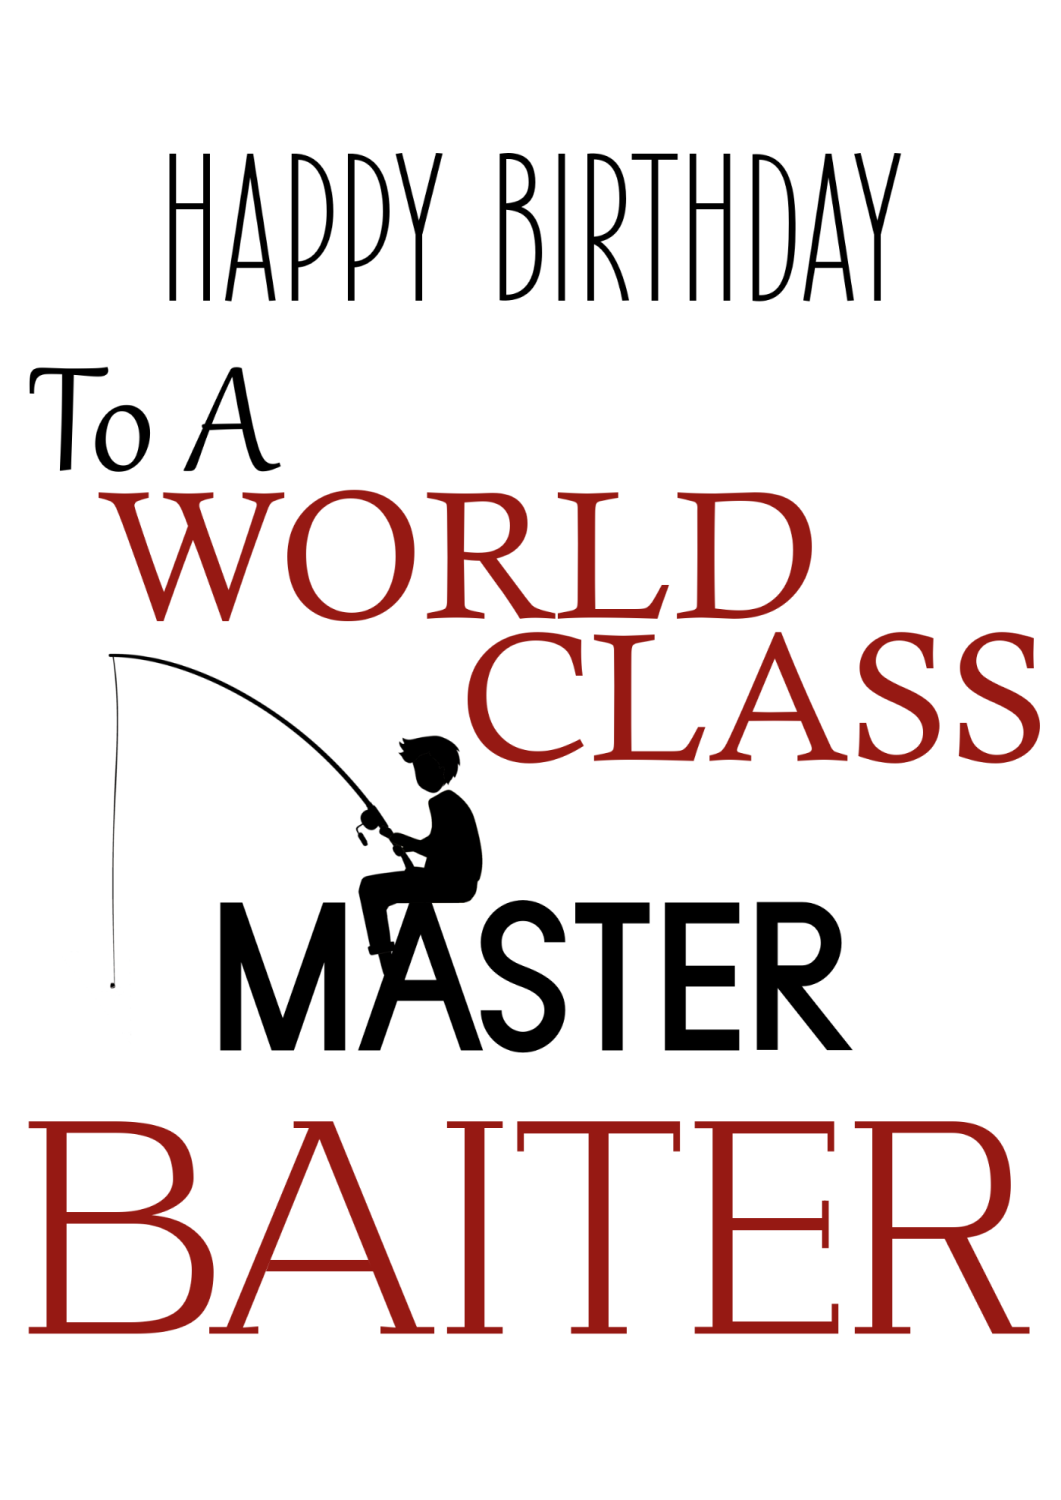 Rude Birthday Cards - MASTER Baiter - Funny BIRTHDAY Cards - FISHING Card -